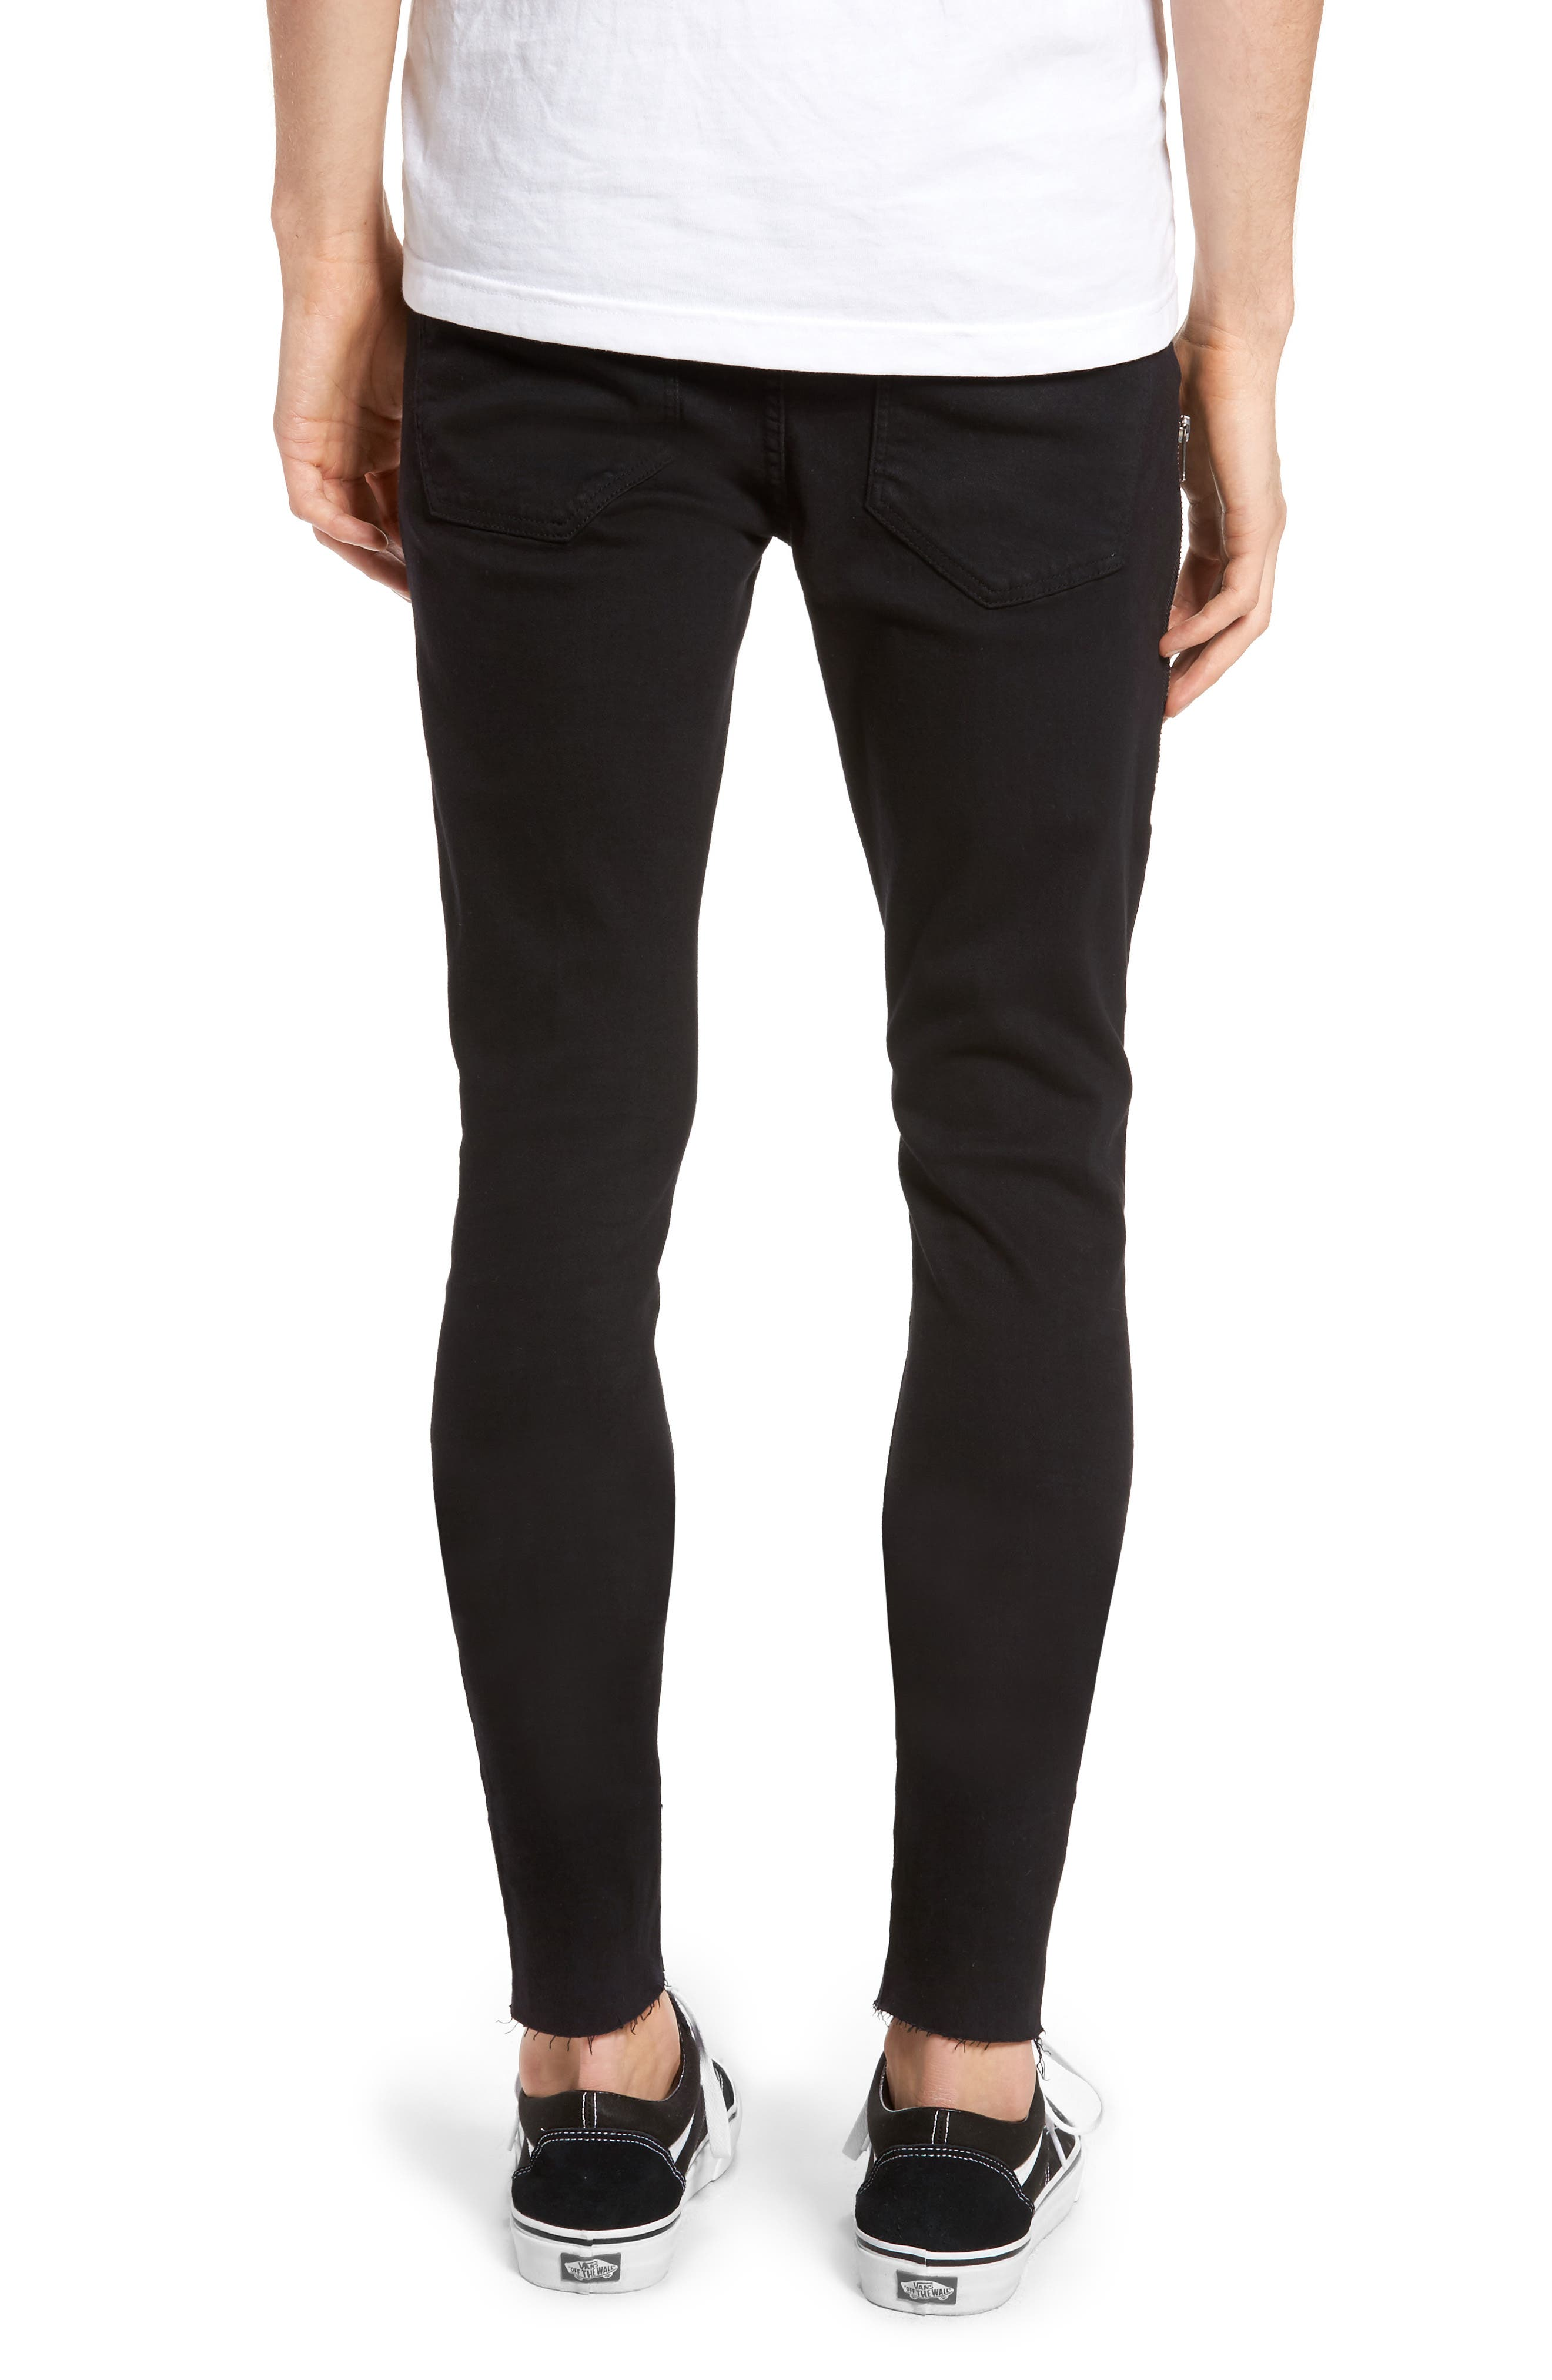 Leroy Skinny Fit Jeans,                             Alternate thumbnail 2, color,                             001